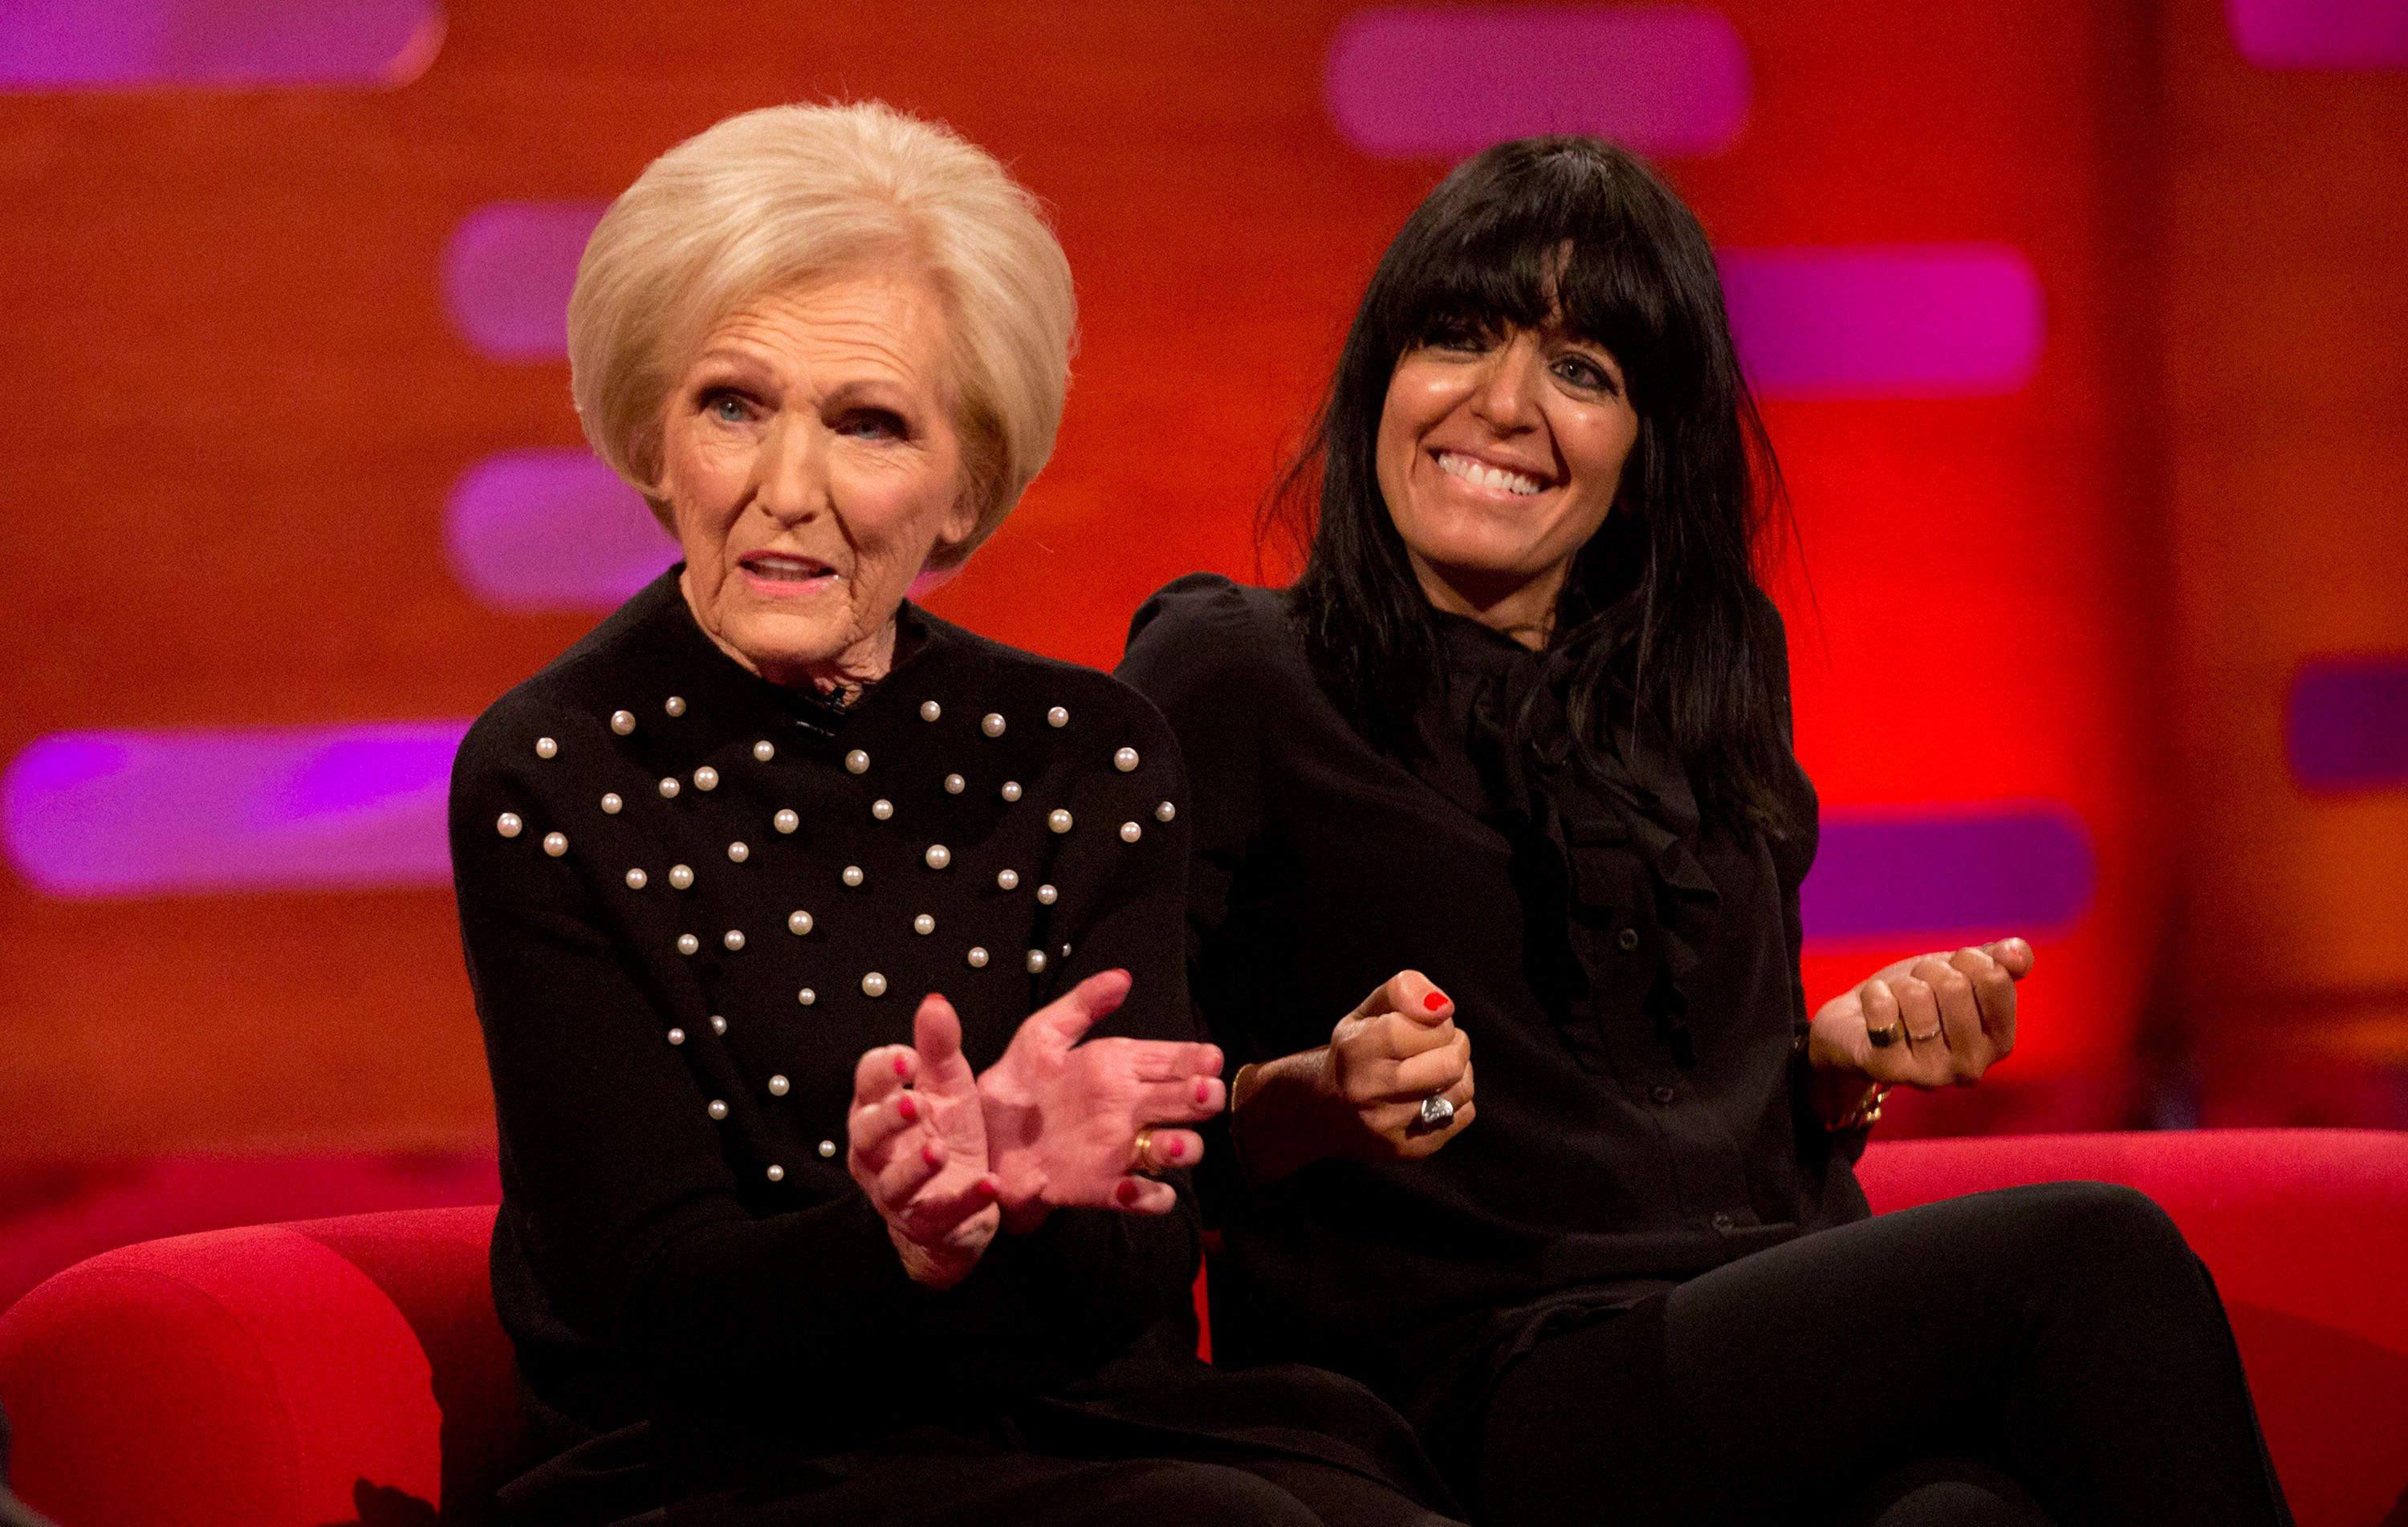 Mary Berry reveals she was once ARRESTED on suspicion of drug trafficking